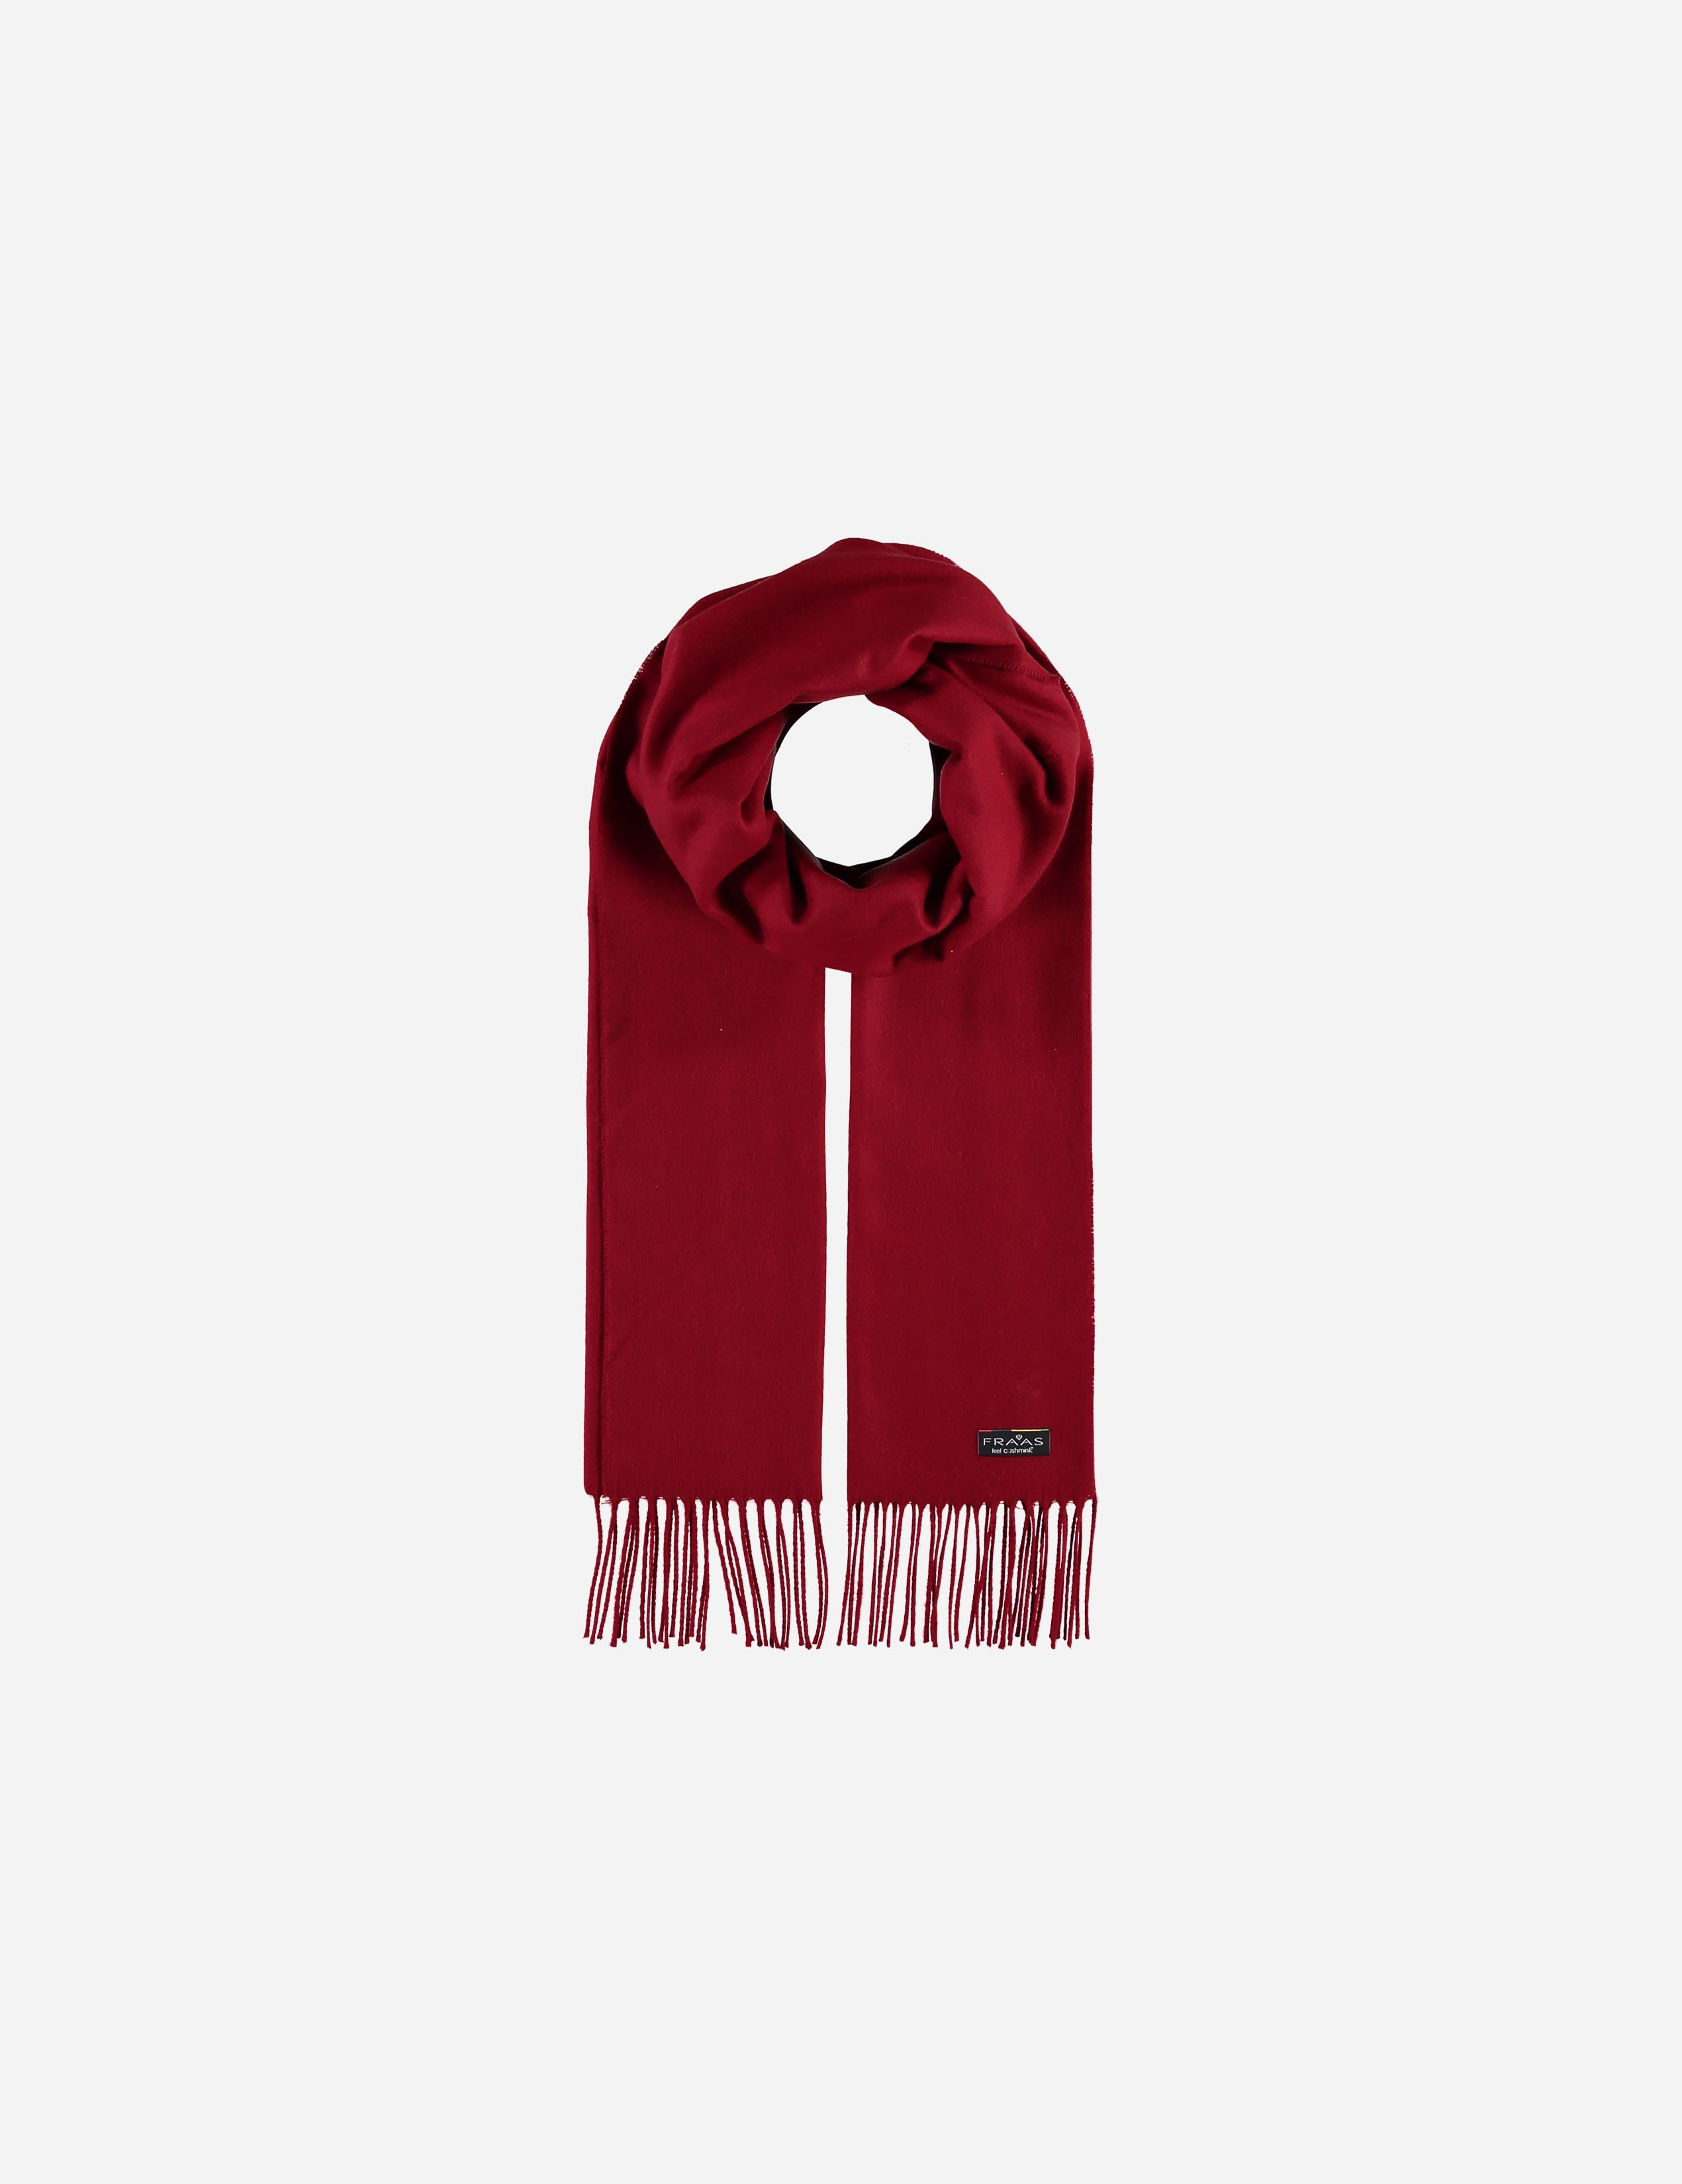 Solid Red- $32.00 Cashmink, Made in Germany 4035419045485